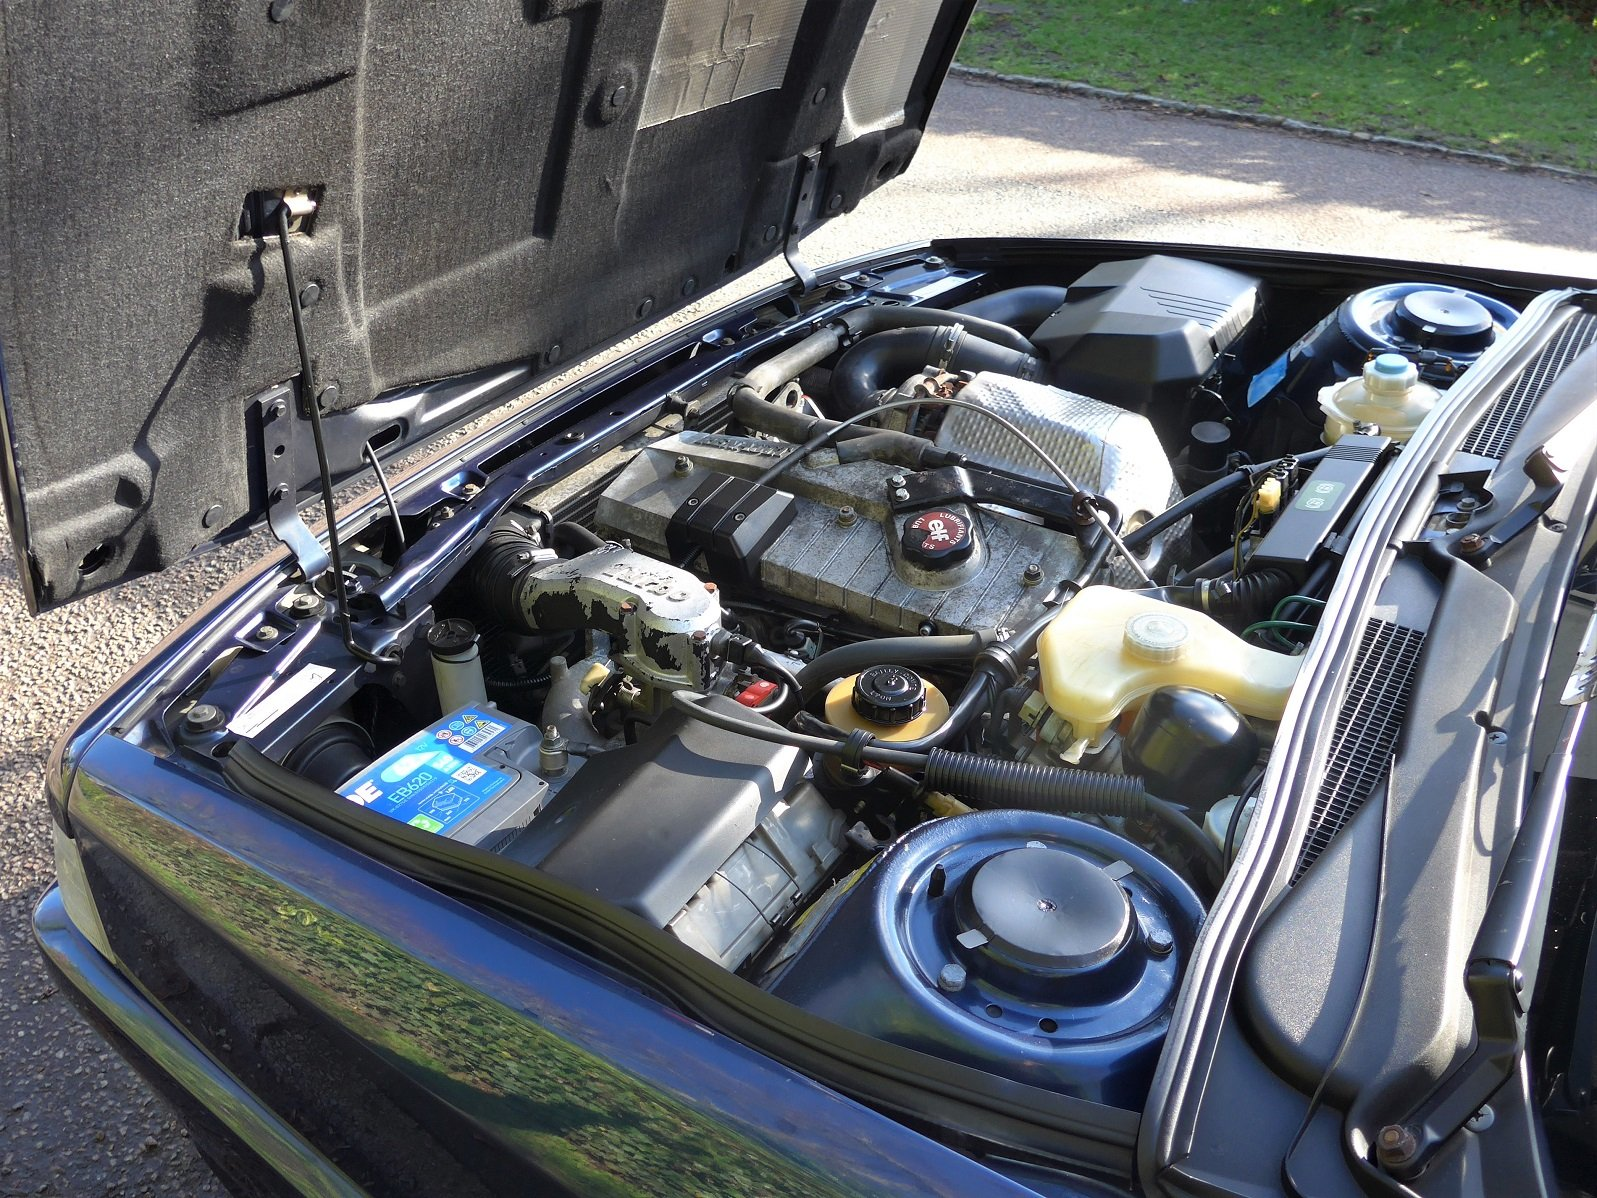 1992 RENAULT 21 TURBO - 27,000 miles. Exceptional. LHD. For Sale (picture 4 of 6)